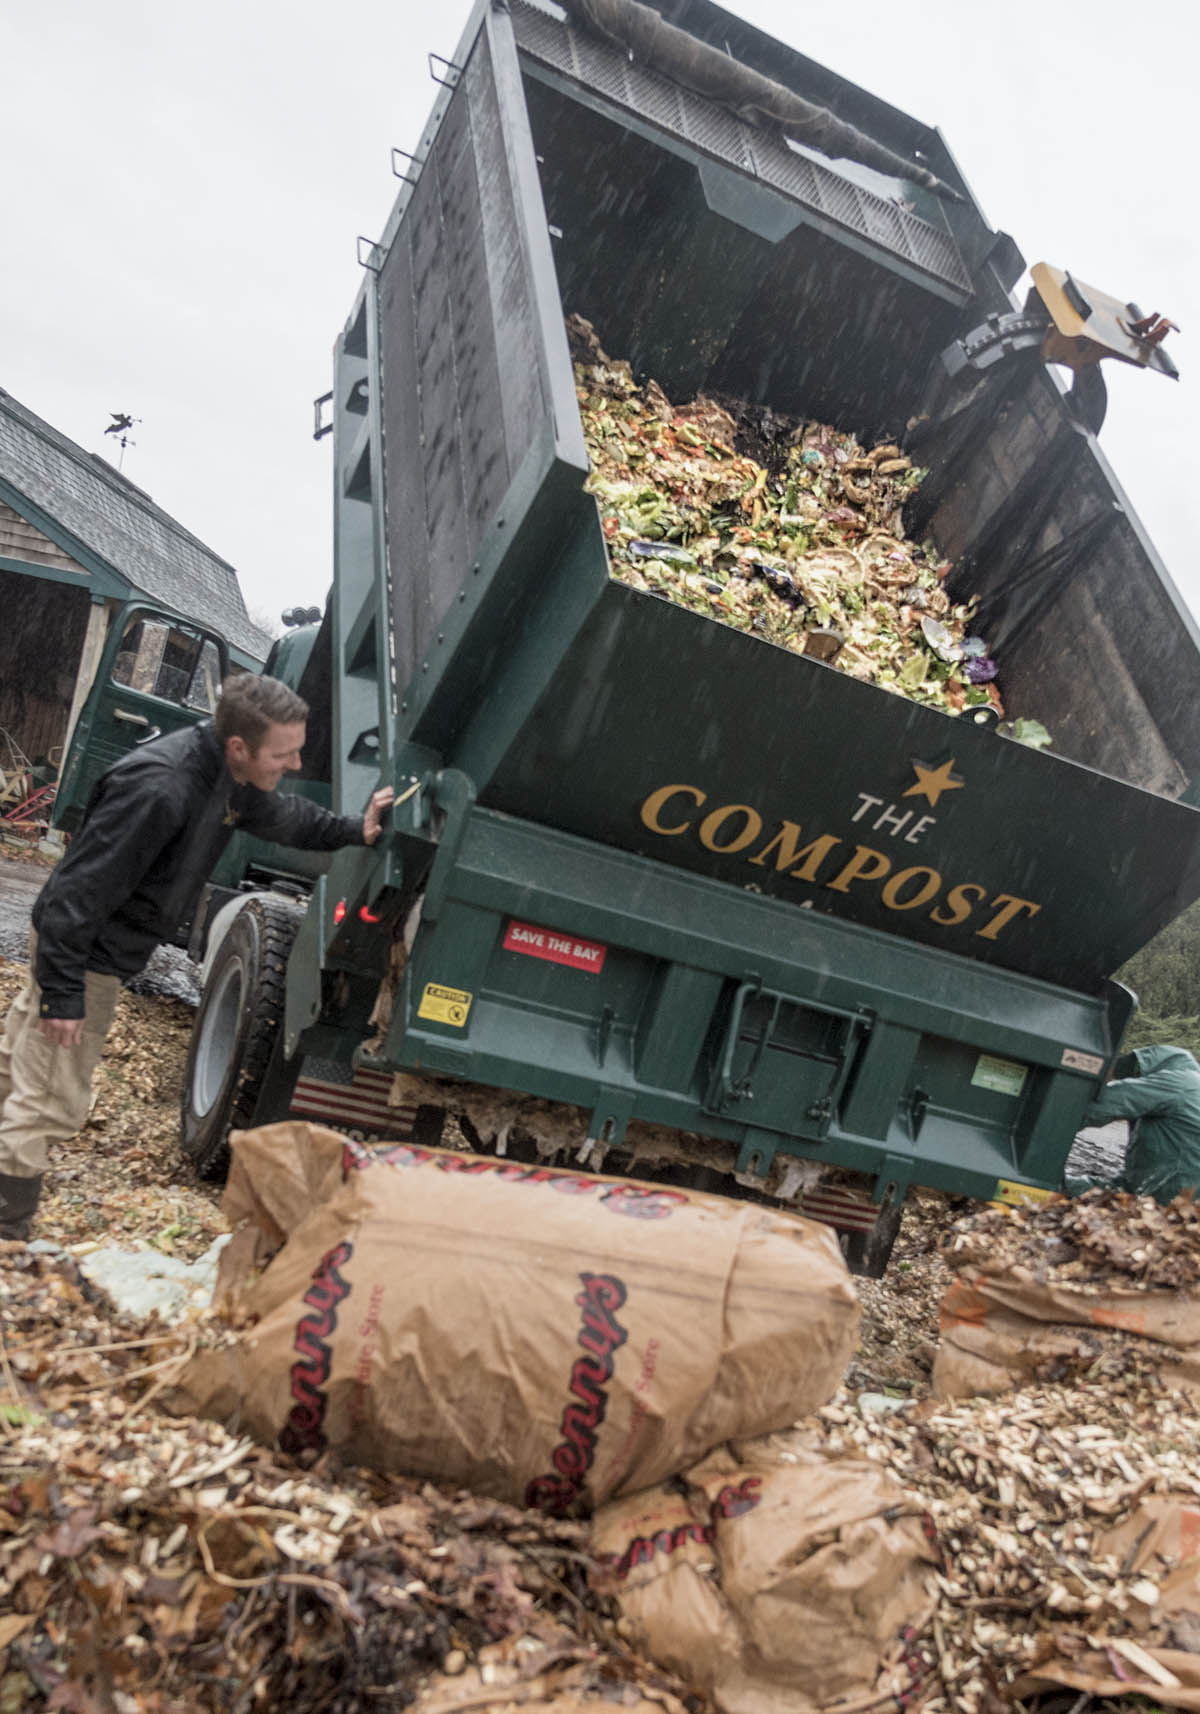 FOOD SCRAPS: Leo Pollock of The Compost Plant, left, and employee Monica Shinn, who does collections and welding on the vehicles for The Compost Plant, dump food scraps at Earth Care Farm in Charlestown, the state's largest composting facility in which food-waste producers can bring their material. / PBN FILE PHOTO/MICHAEL SALERNO